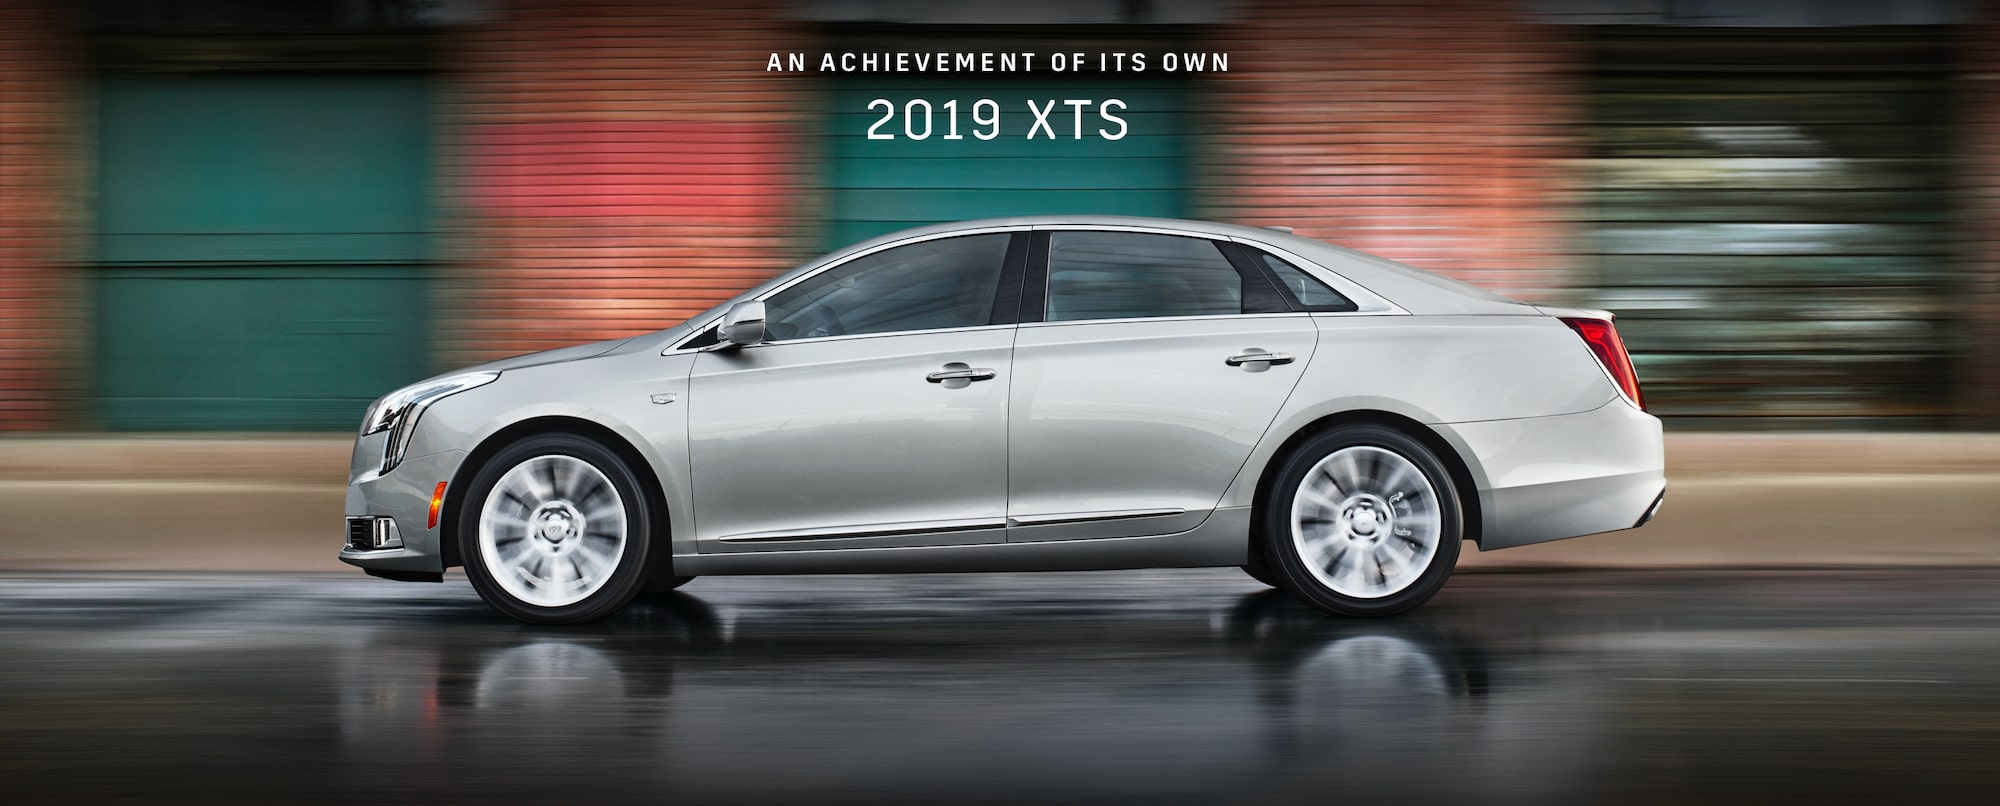 small resolution of xts wiring diagram wiring diagrams lol 2012 cadillac xts wiring diagram wiring library diagram h9 series